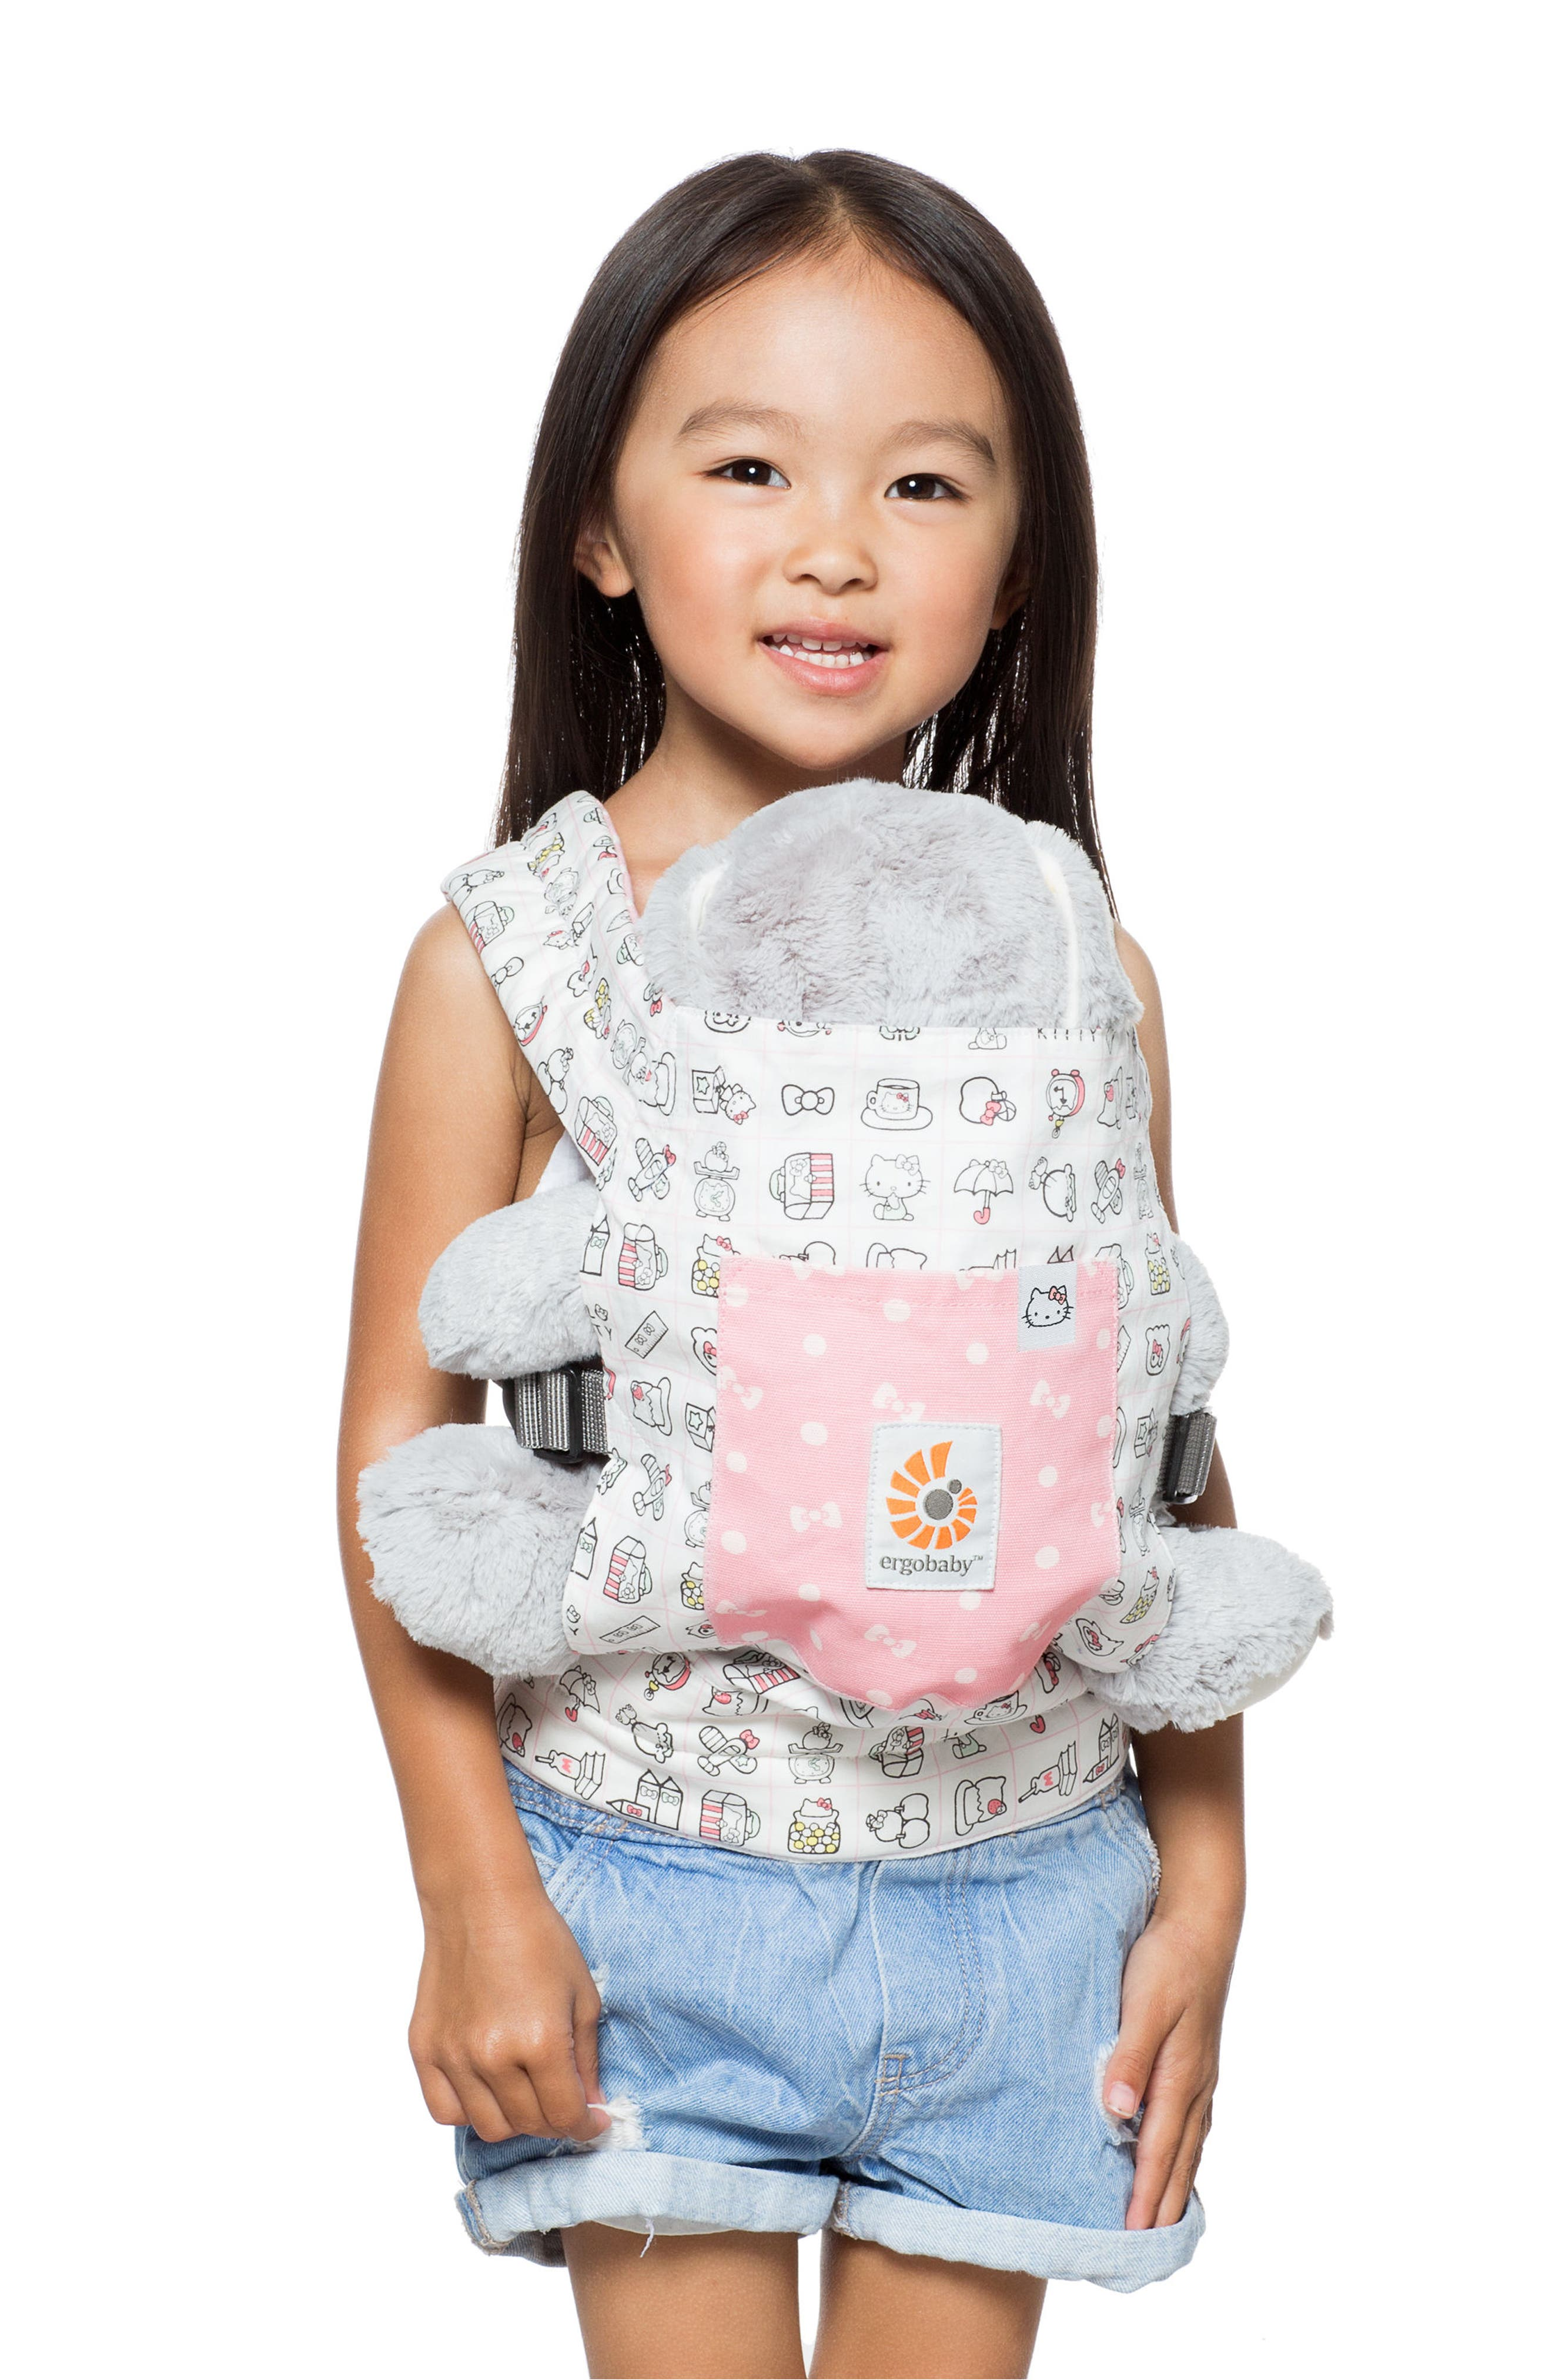 x Hello Kitty<sup>®</sup> Doll Carrier,                             Alternate thumbnail 2, color,